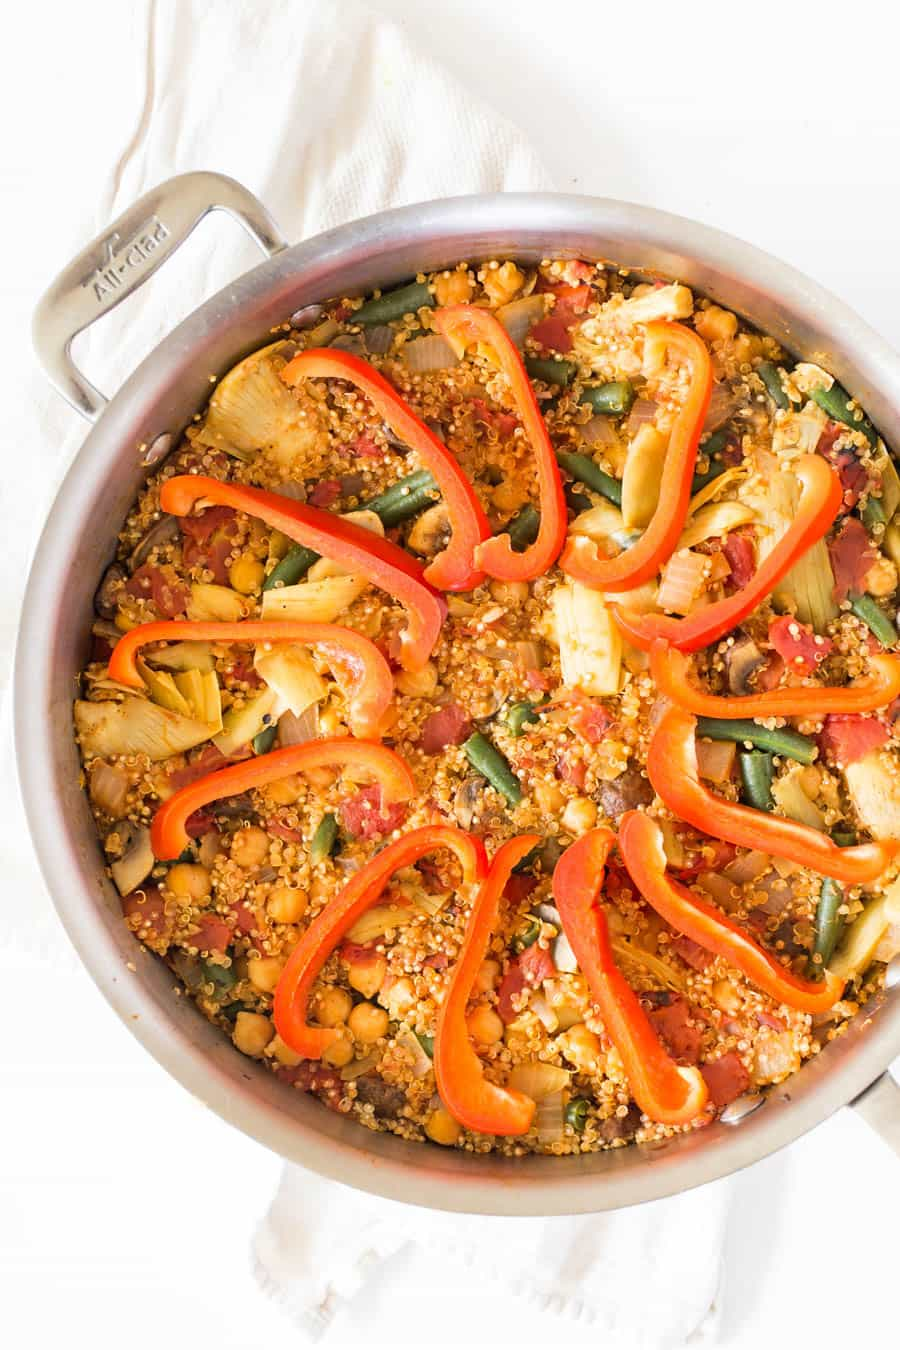 vegetarian paella made with quinoa